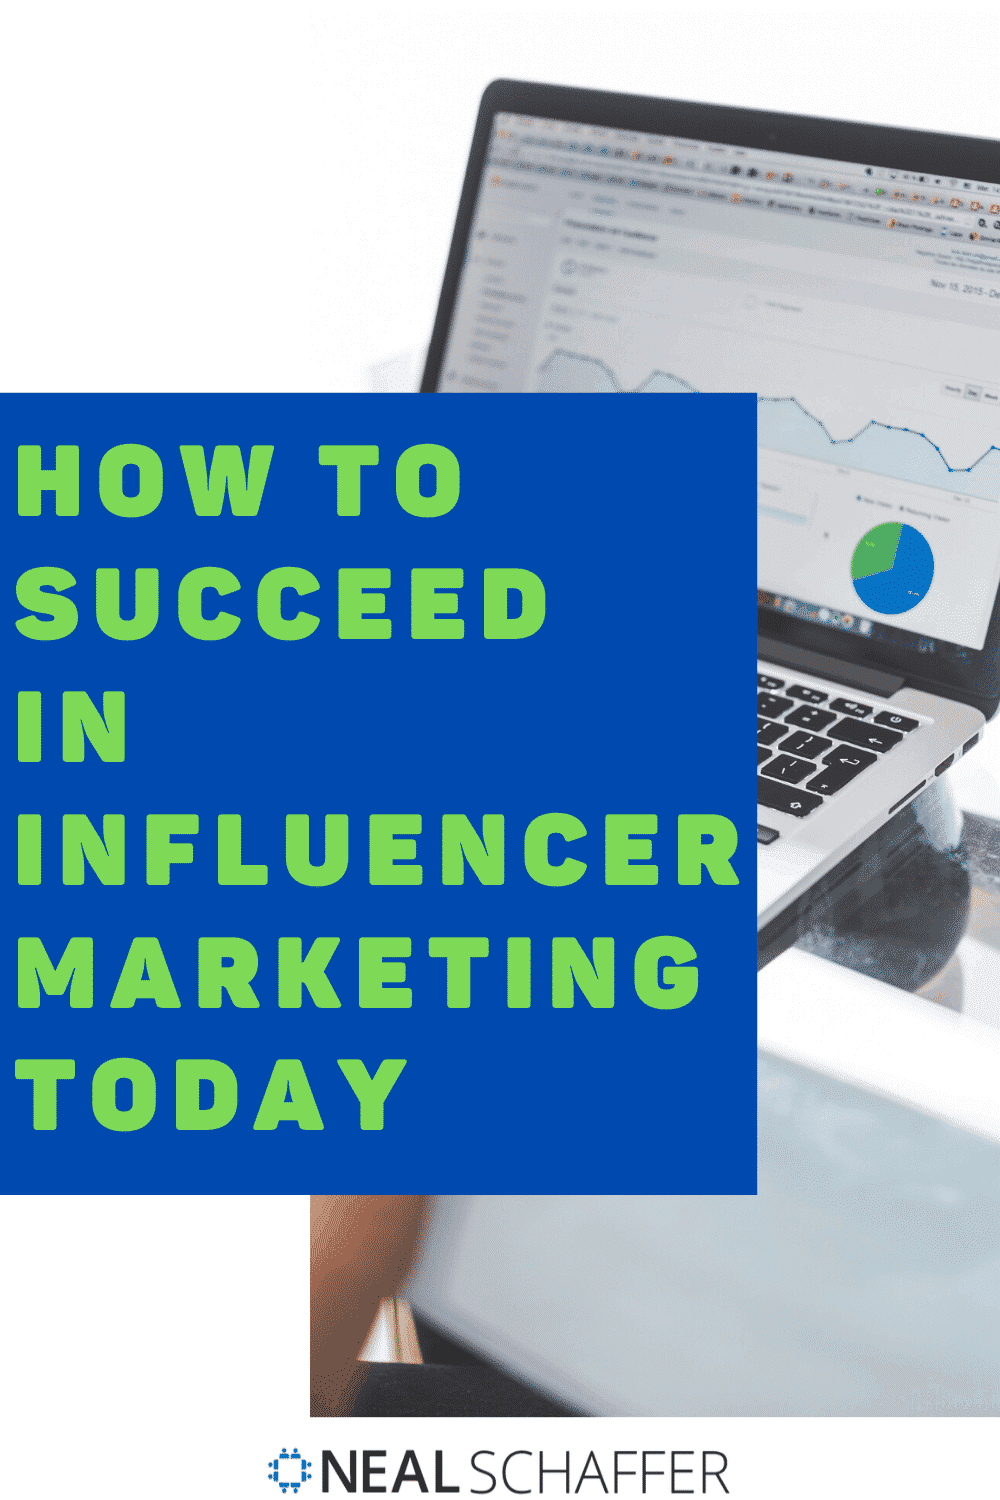 The Age of Influence represents the second decade of social media marketing. Learn why and how it is time to better leverage influencer marketing, including